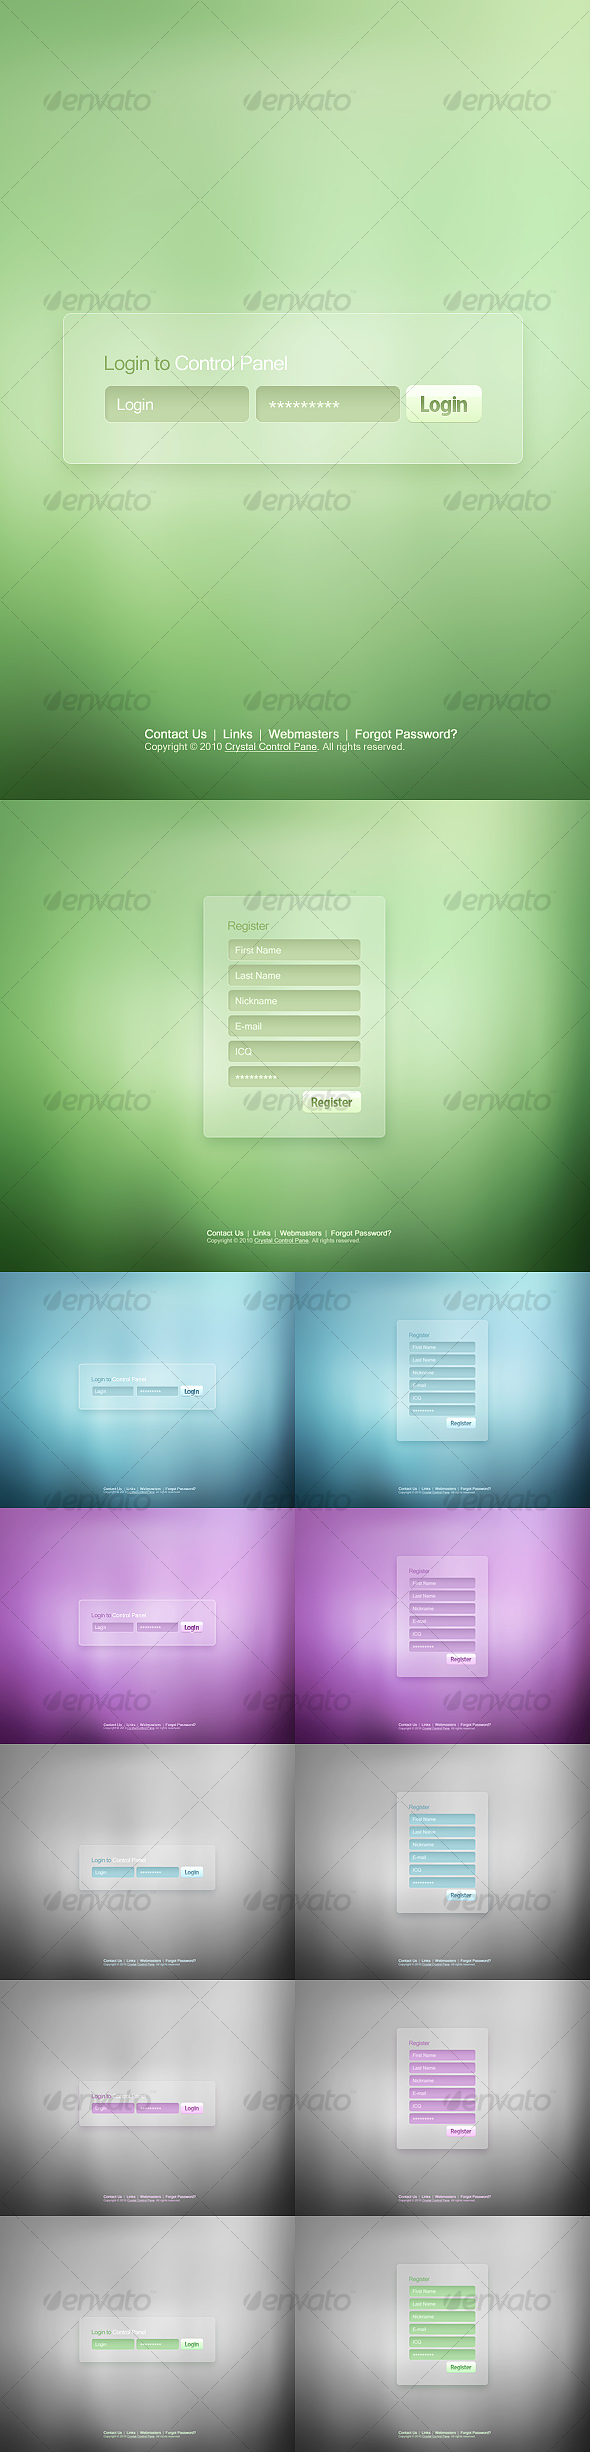 High Level Login & Registration Screen Design